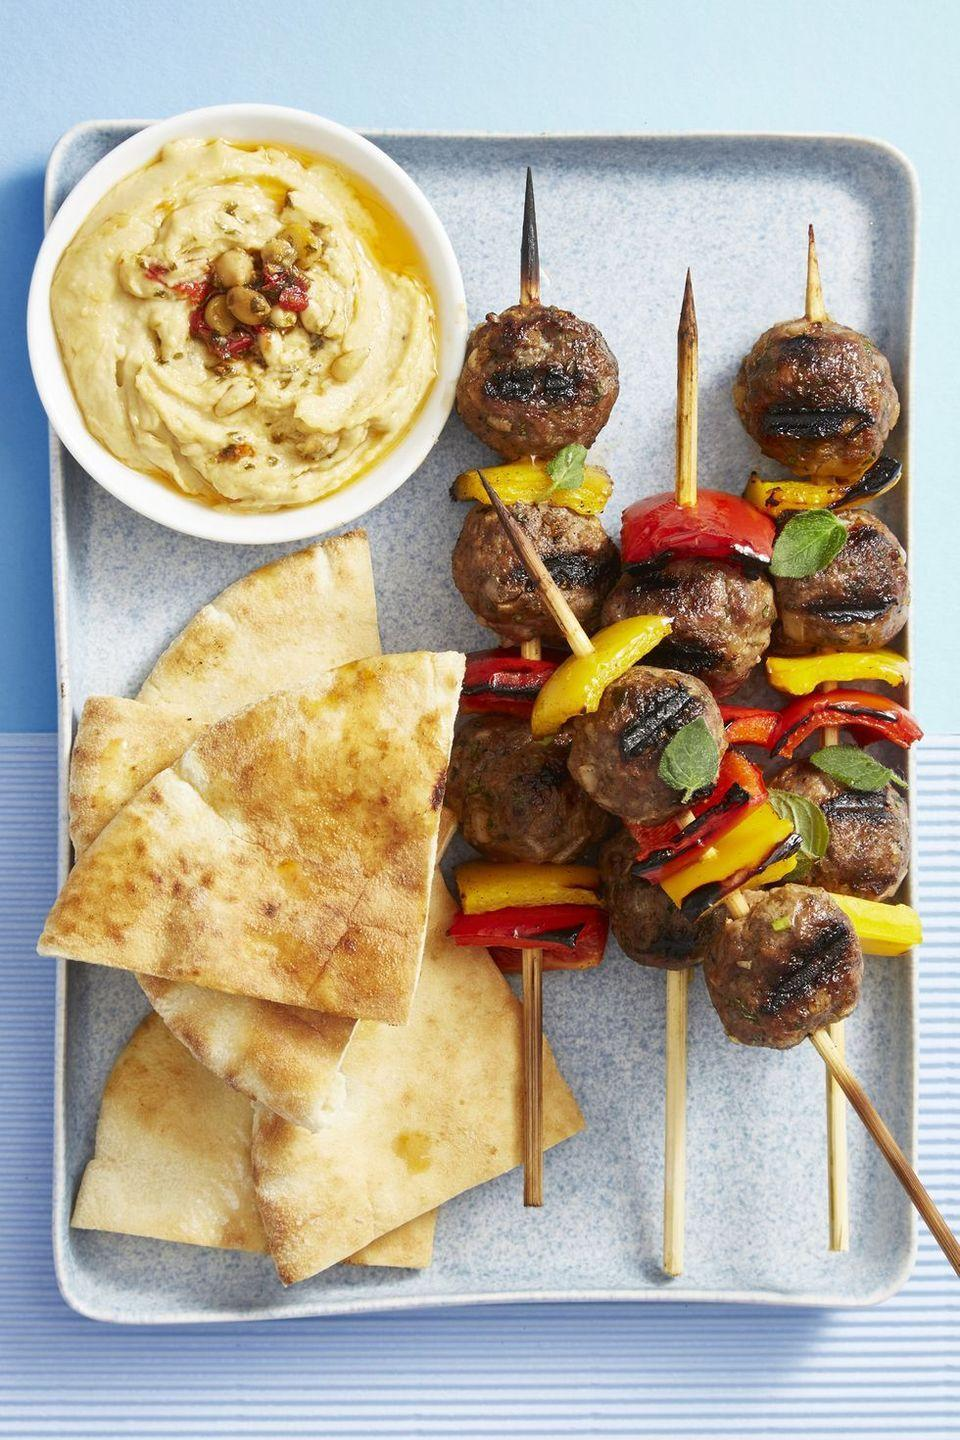 """<p>Kababs are the perfect finger foods because, well, your guests don't have to dirty their fingers to eat them. Spicy lamb meatballs make these feel elevated — without any extra work on your end. </p><p><em><a href=""""https://www.goodhousekeeping.com/food-recipes/easy/a44727/grilled-lamb-meatball-pepper-skewers-recipe/"""" rel=""""nofollow noopener"""" target=""""_blank"""" data-ylk=""""slk:Get the recipe for Grilled Lamb Meatball Pepper Skewers »"""" class=""""link rapid-noclick-resp"""">Get the recipe for Grilled Lamb Meatball Pepper Skewers »</a></em> </p>"""